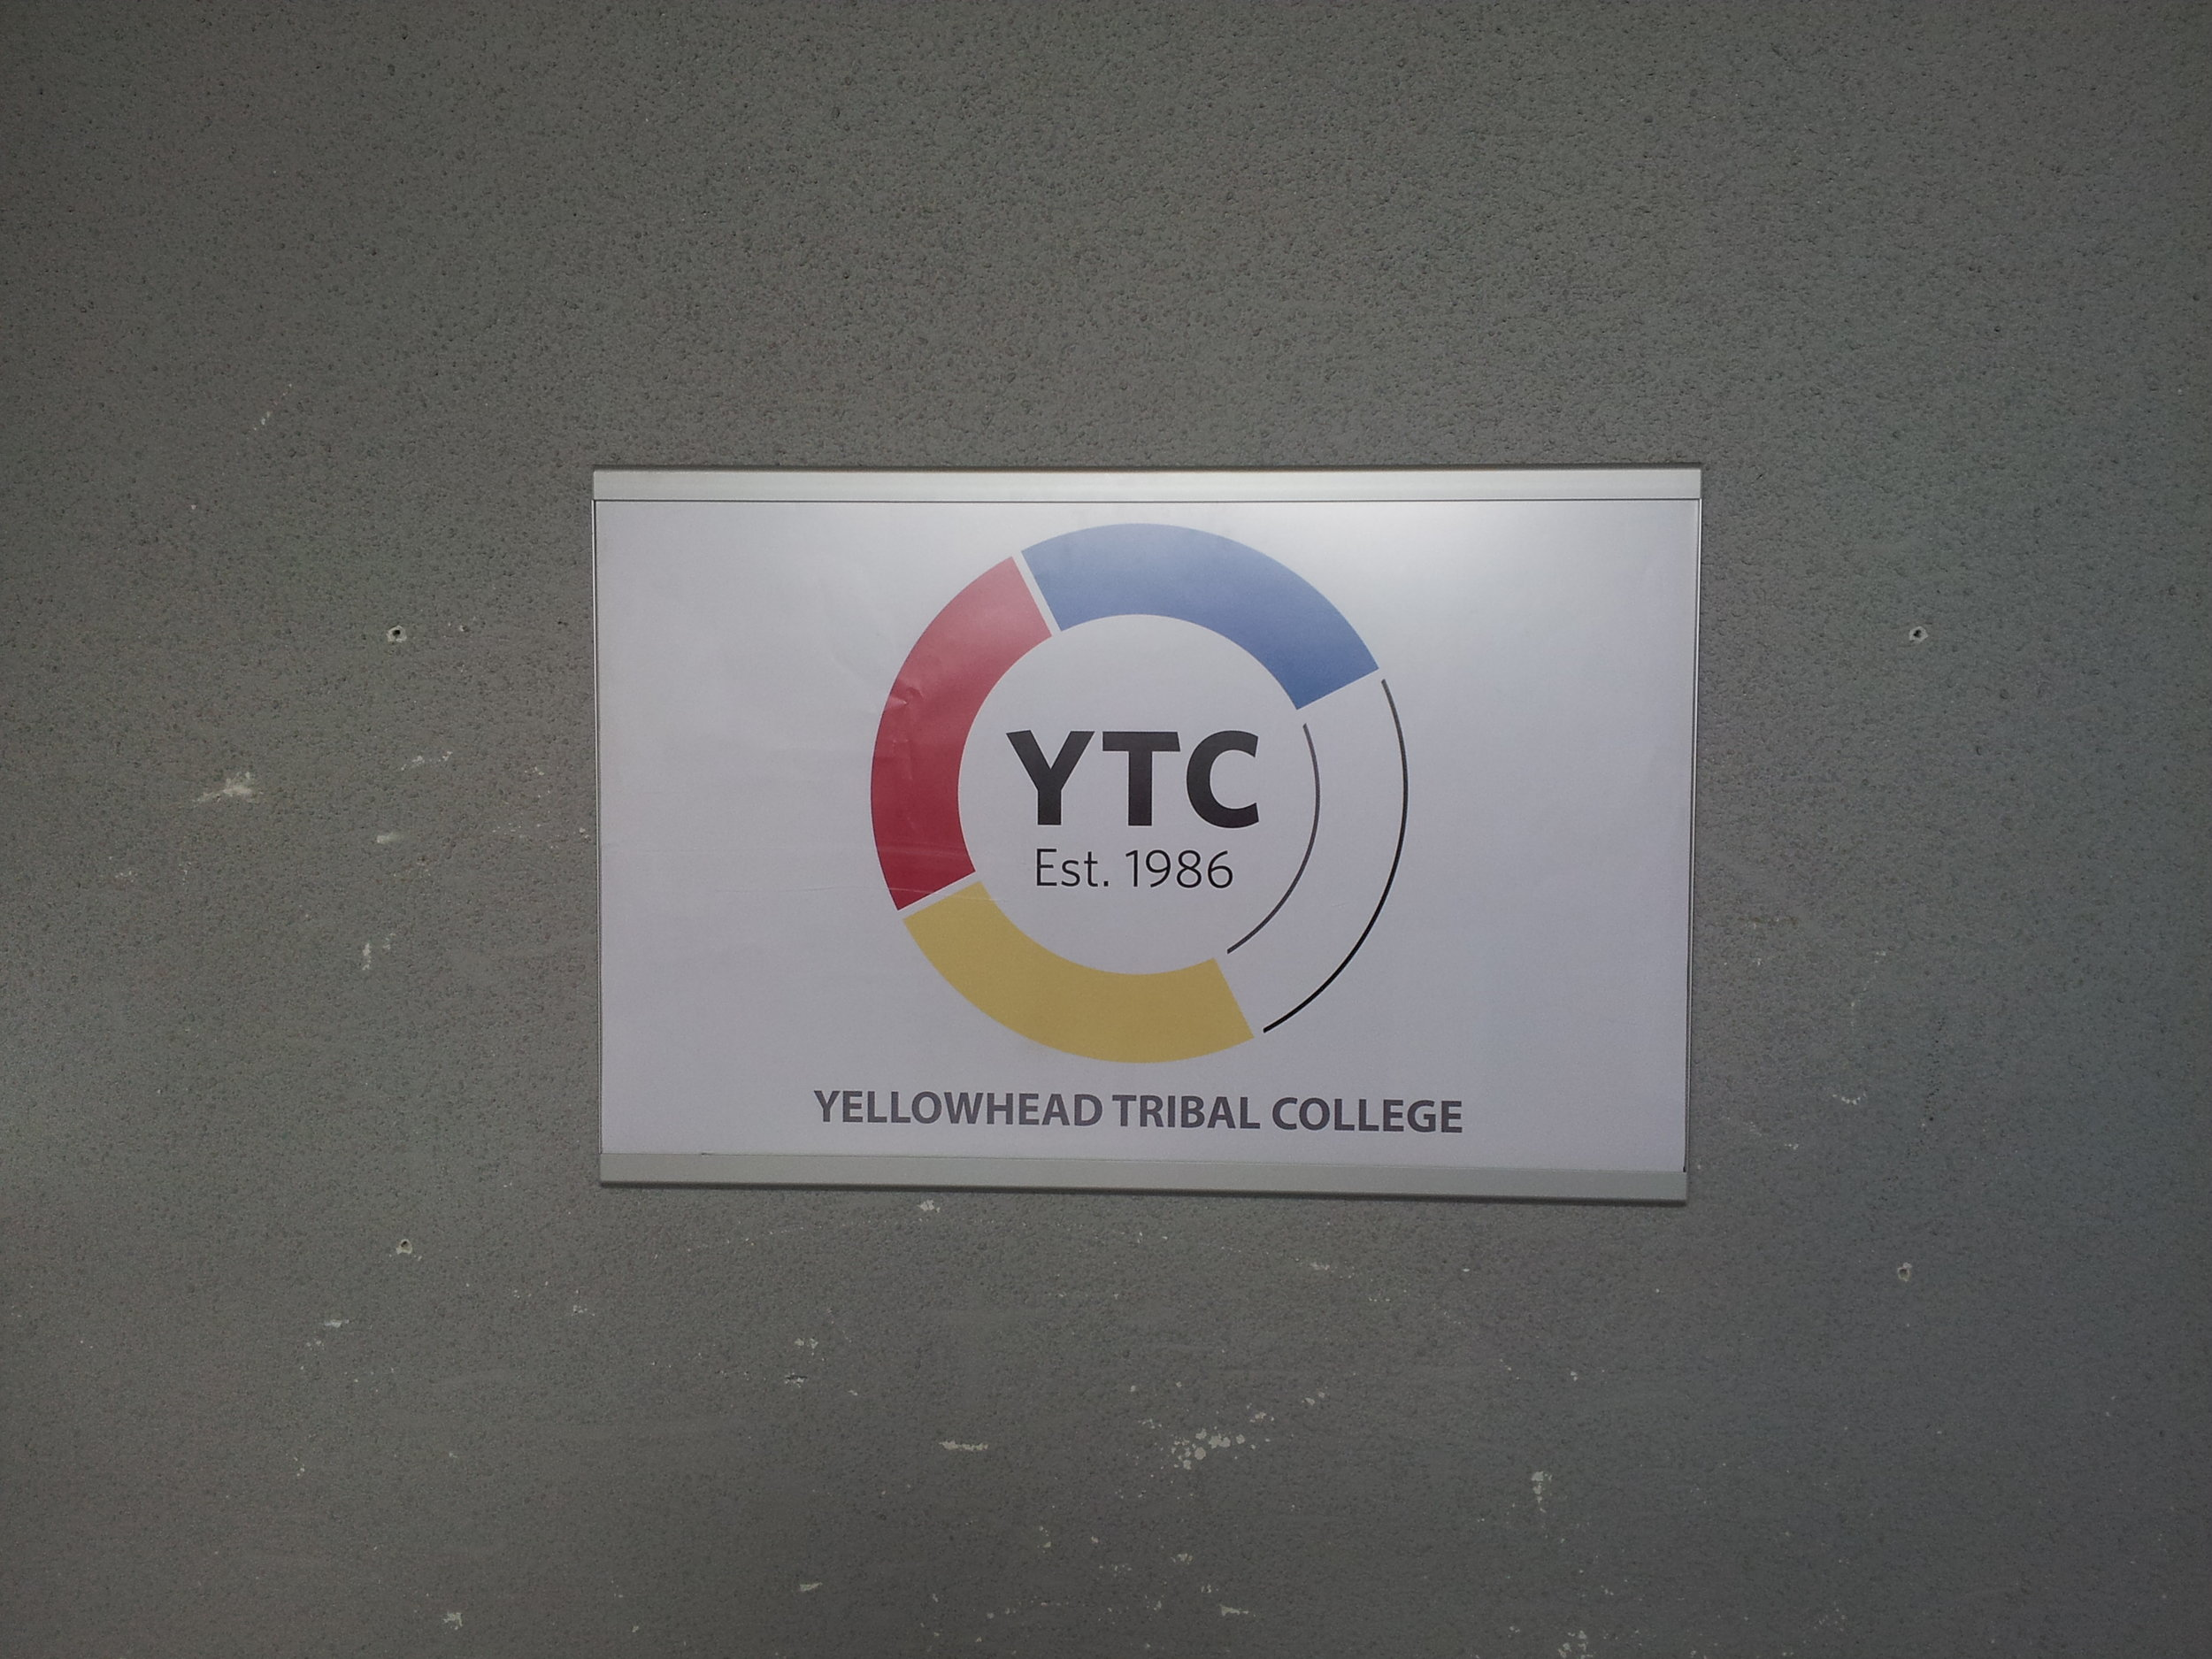 This is the YTC logo representing the 4 bands of the Yellowhead Tribal Council - Alexander, Alexis, O'Chiese, and Sunchild.